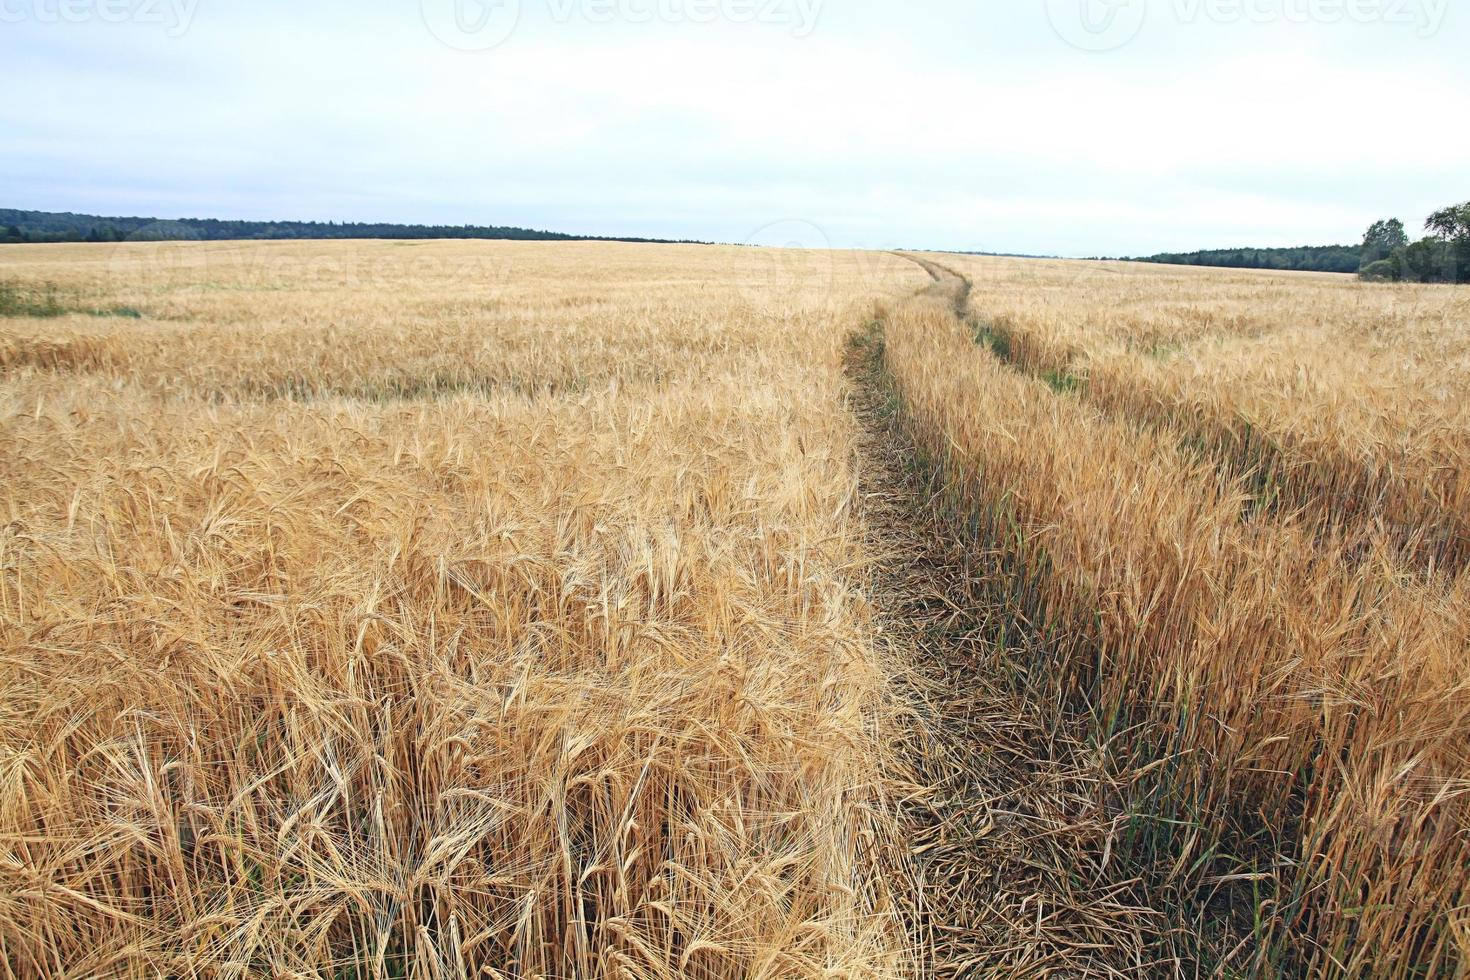 barley field texture landscape photo